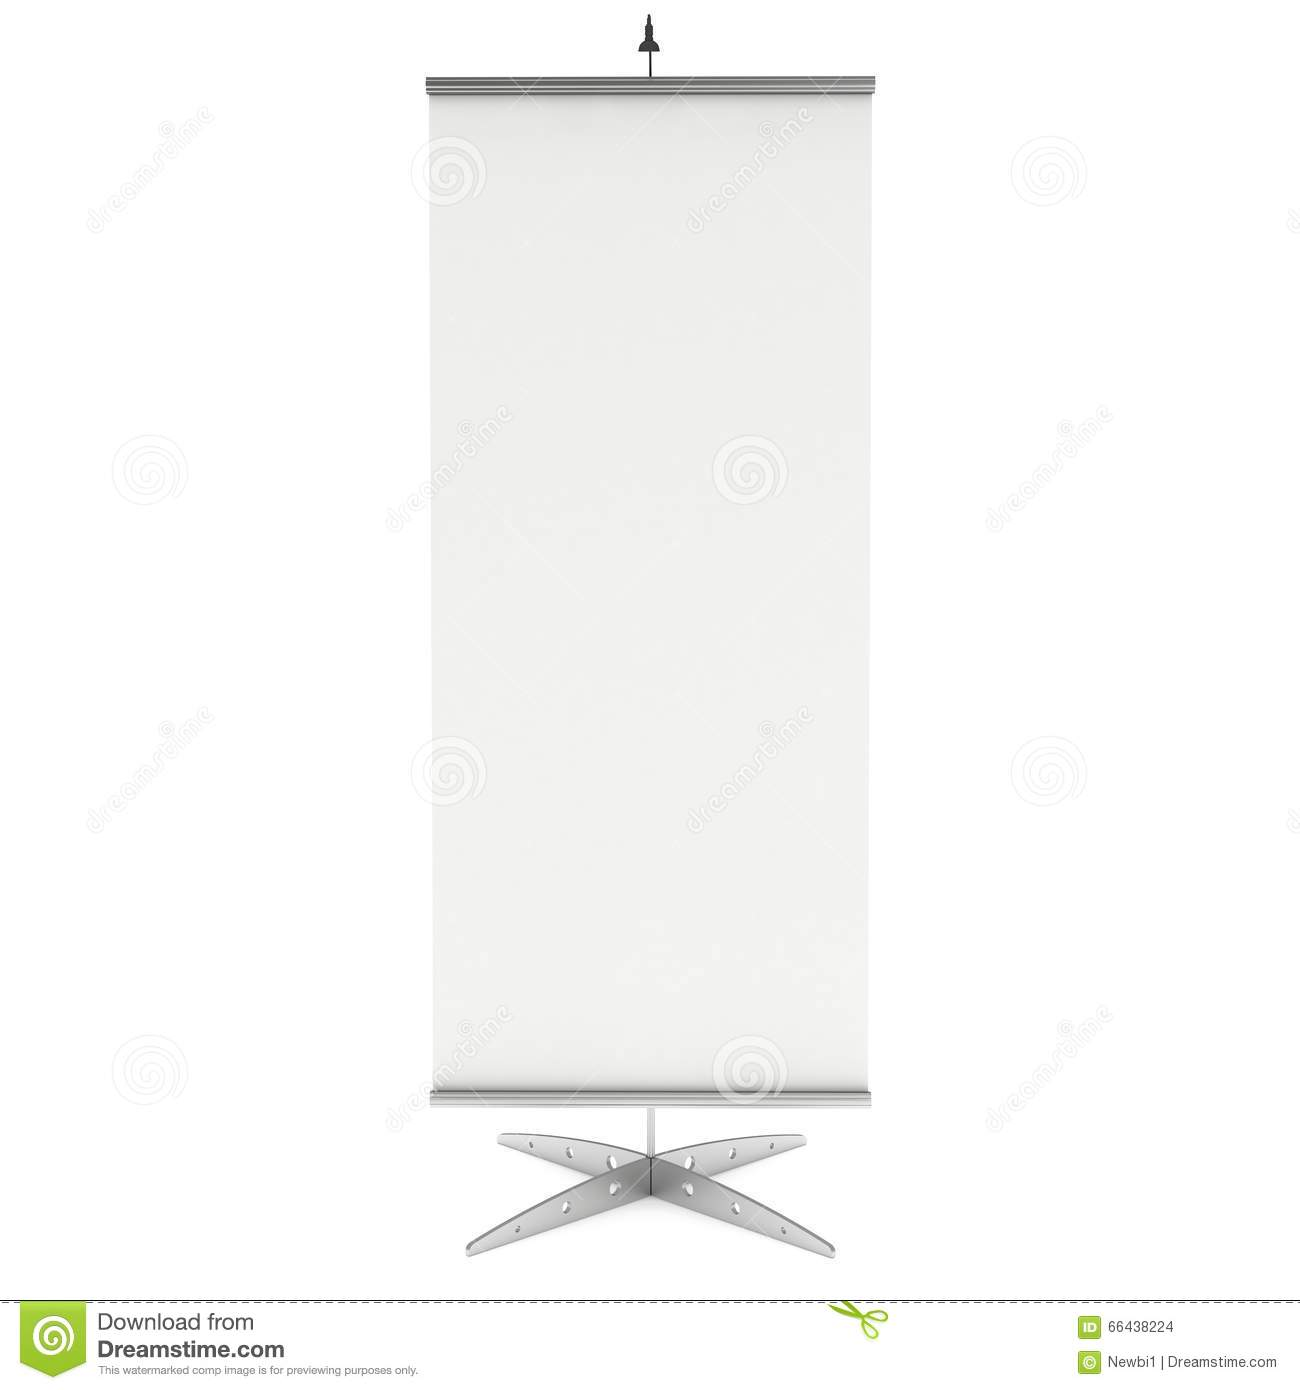 blank roll up banner stand 3d stock illustration image 66438224. Black Bedroom Furniture Sets. Home Design Ideas